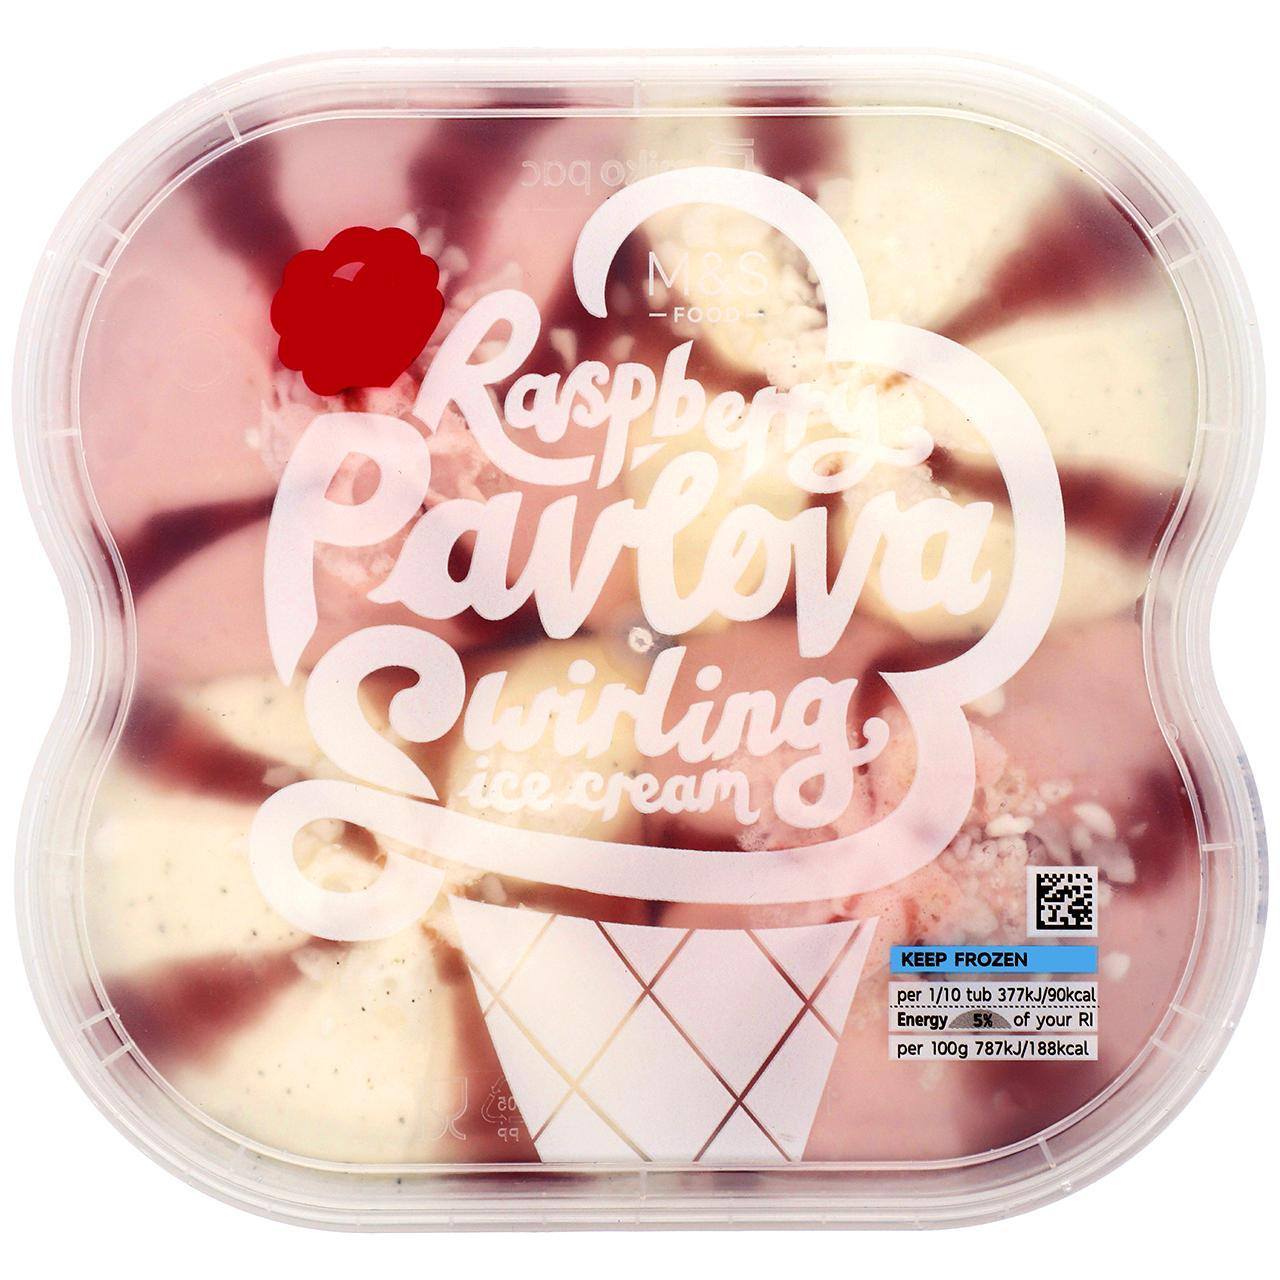 Raspberry Swirl Pavlova Ice Cream 1L